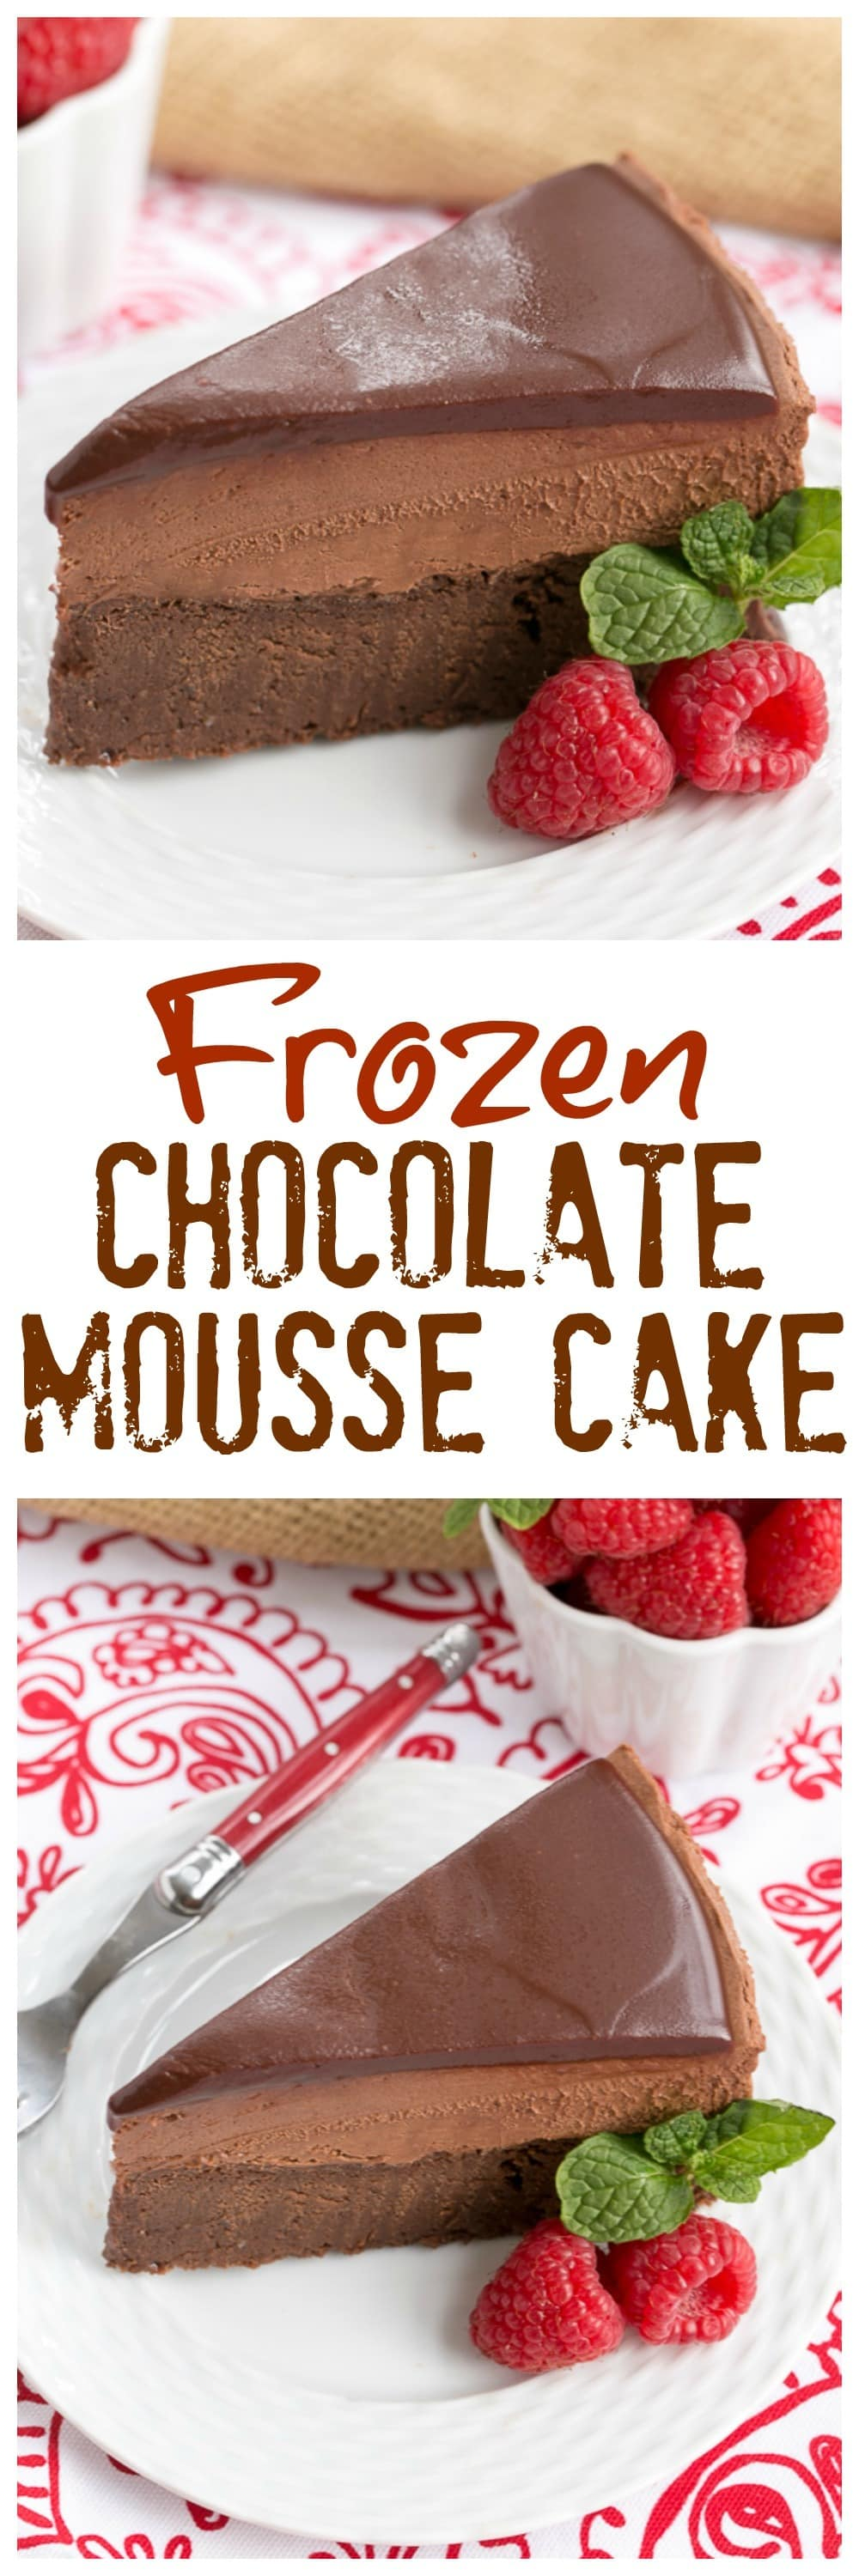 Frozen Chocolate Mousse Cake - An exquisite, frozen, swoon worthy chocolate dessert! #frozen #chocolate #mousse #moussecake